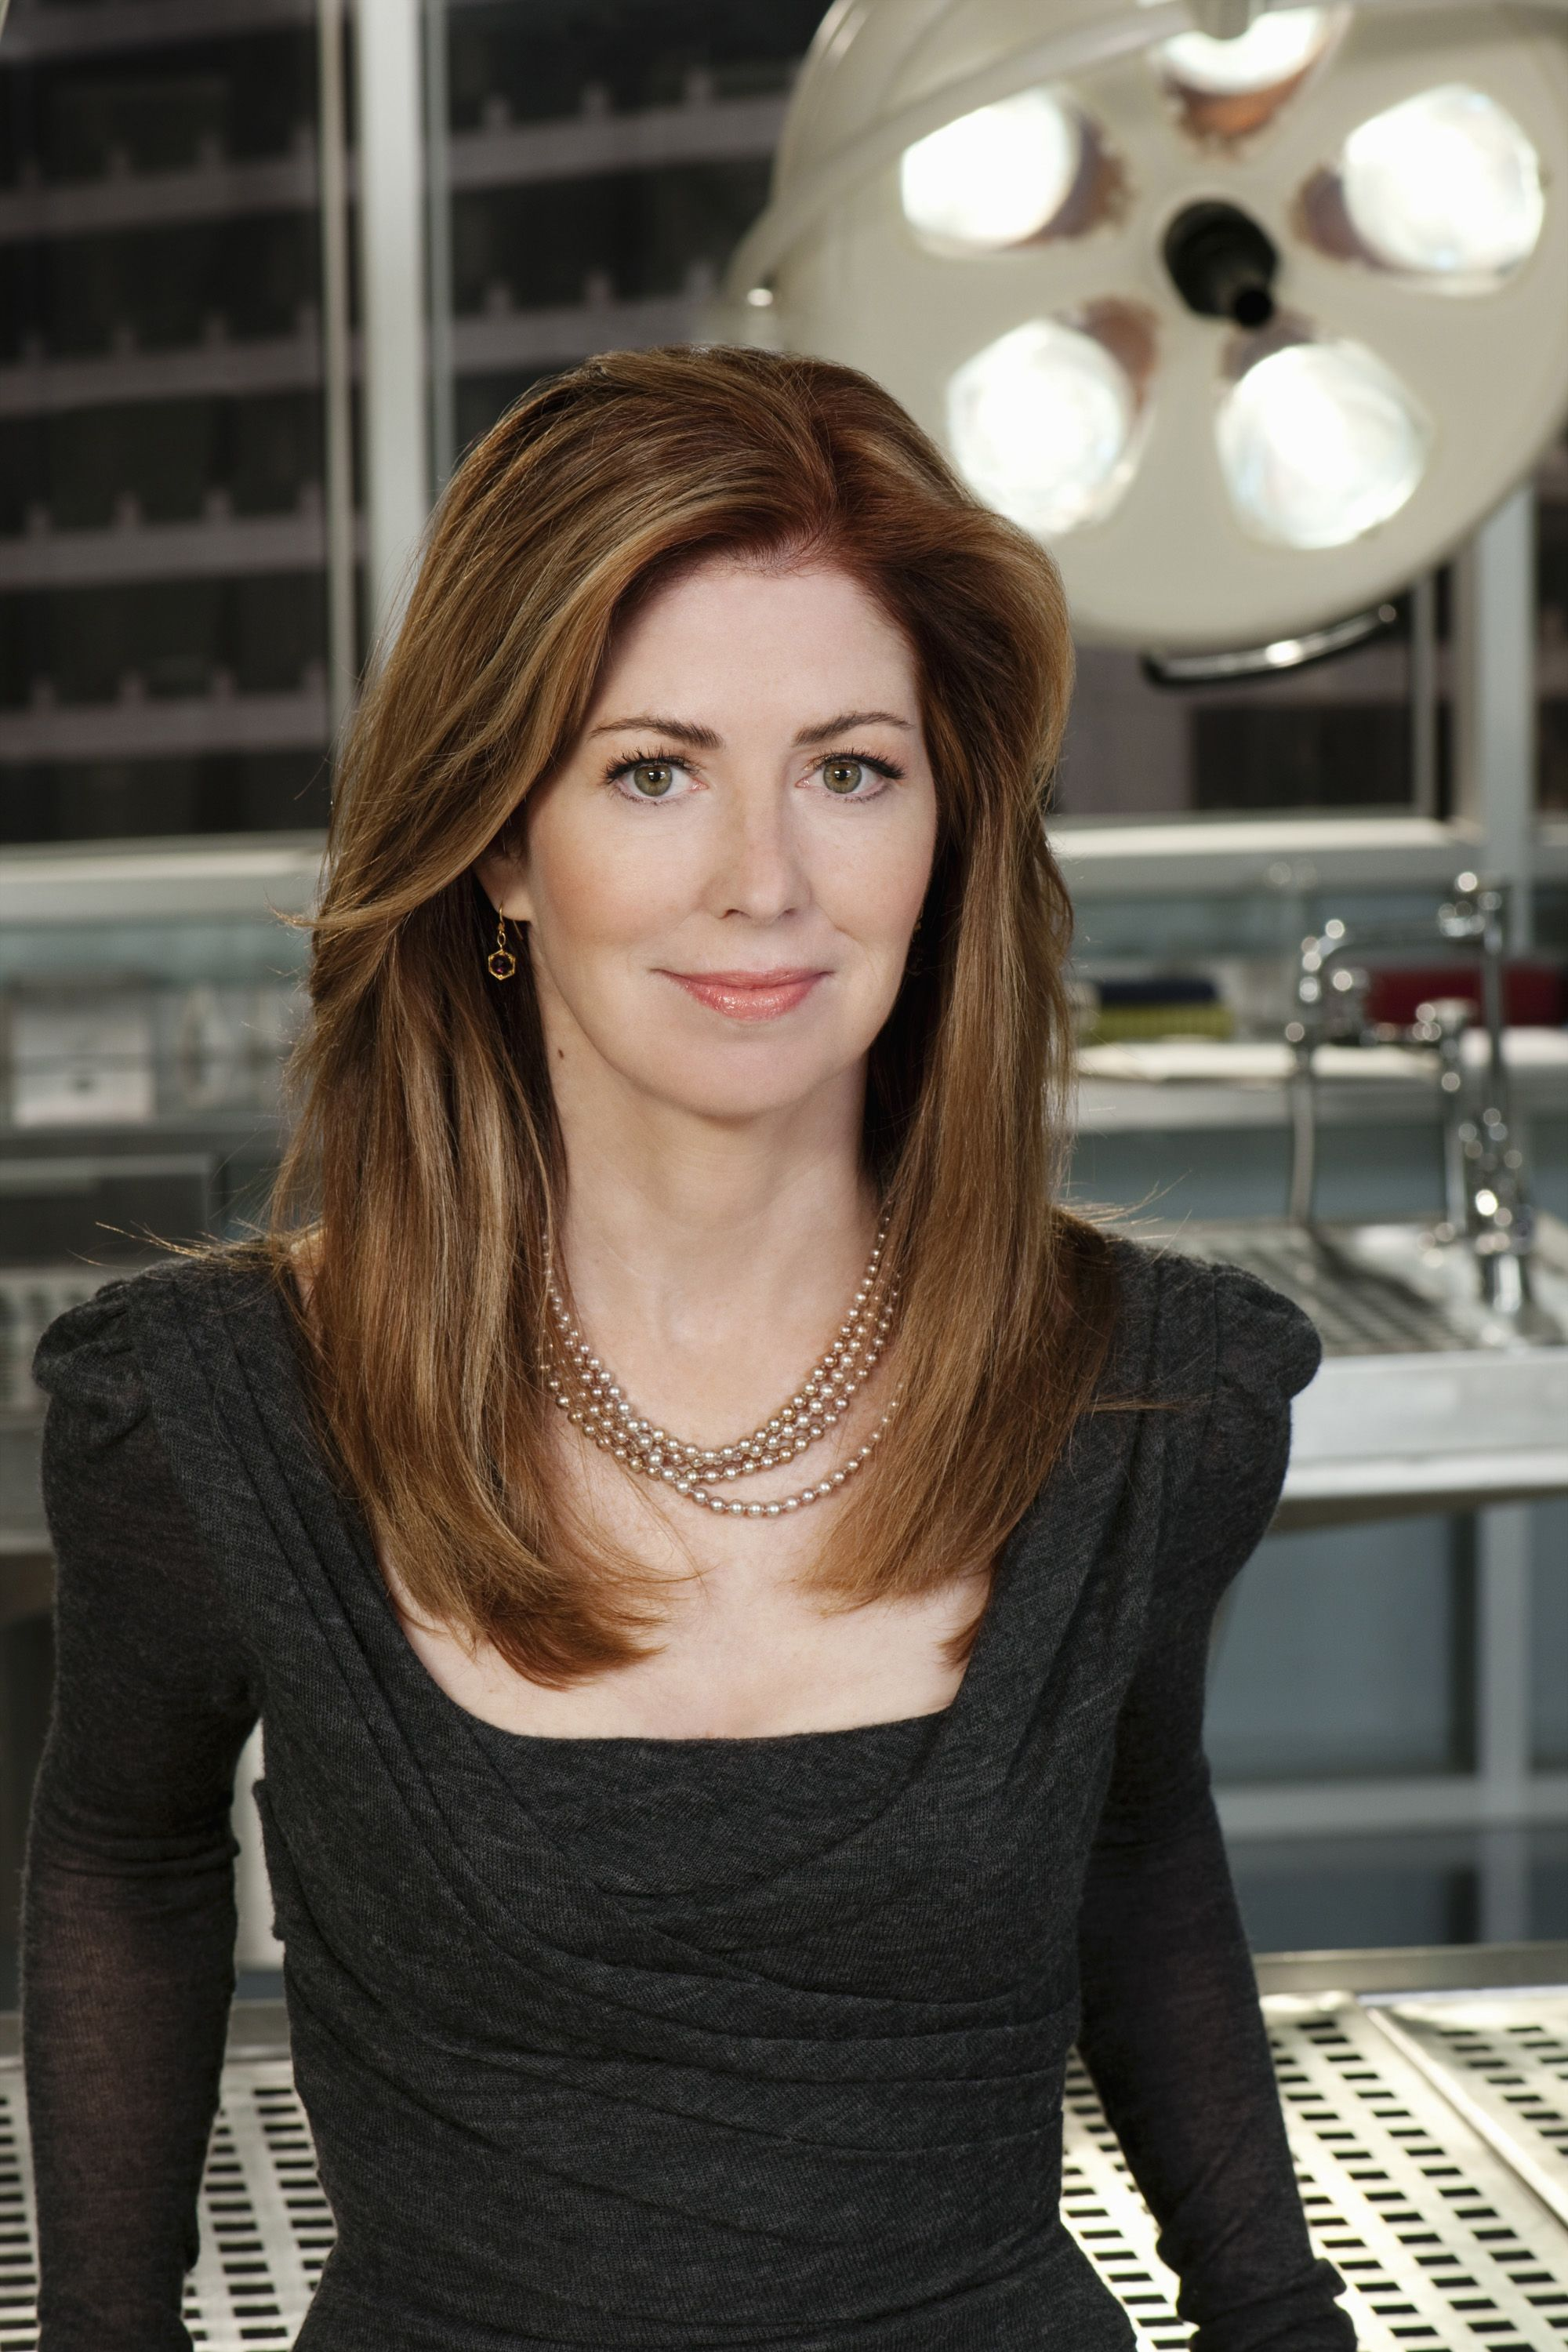 Celebrity Dana Delany nudes (38 photo), Tits, Fappening, Instagram, butt 2006